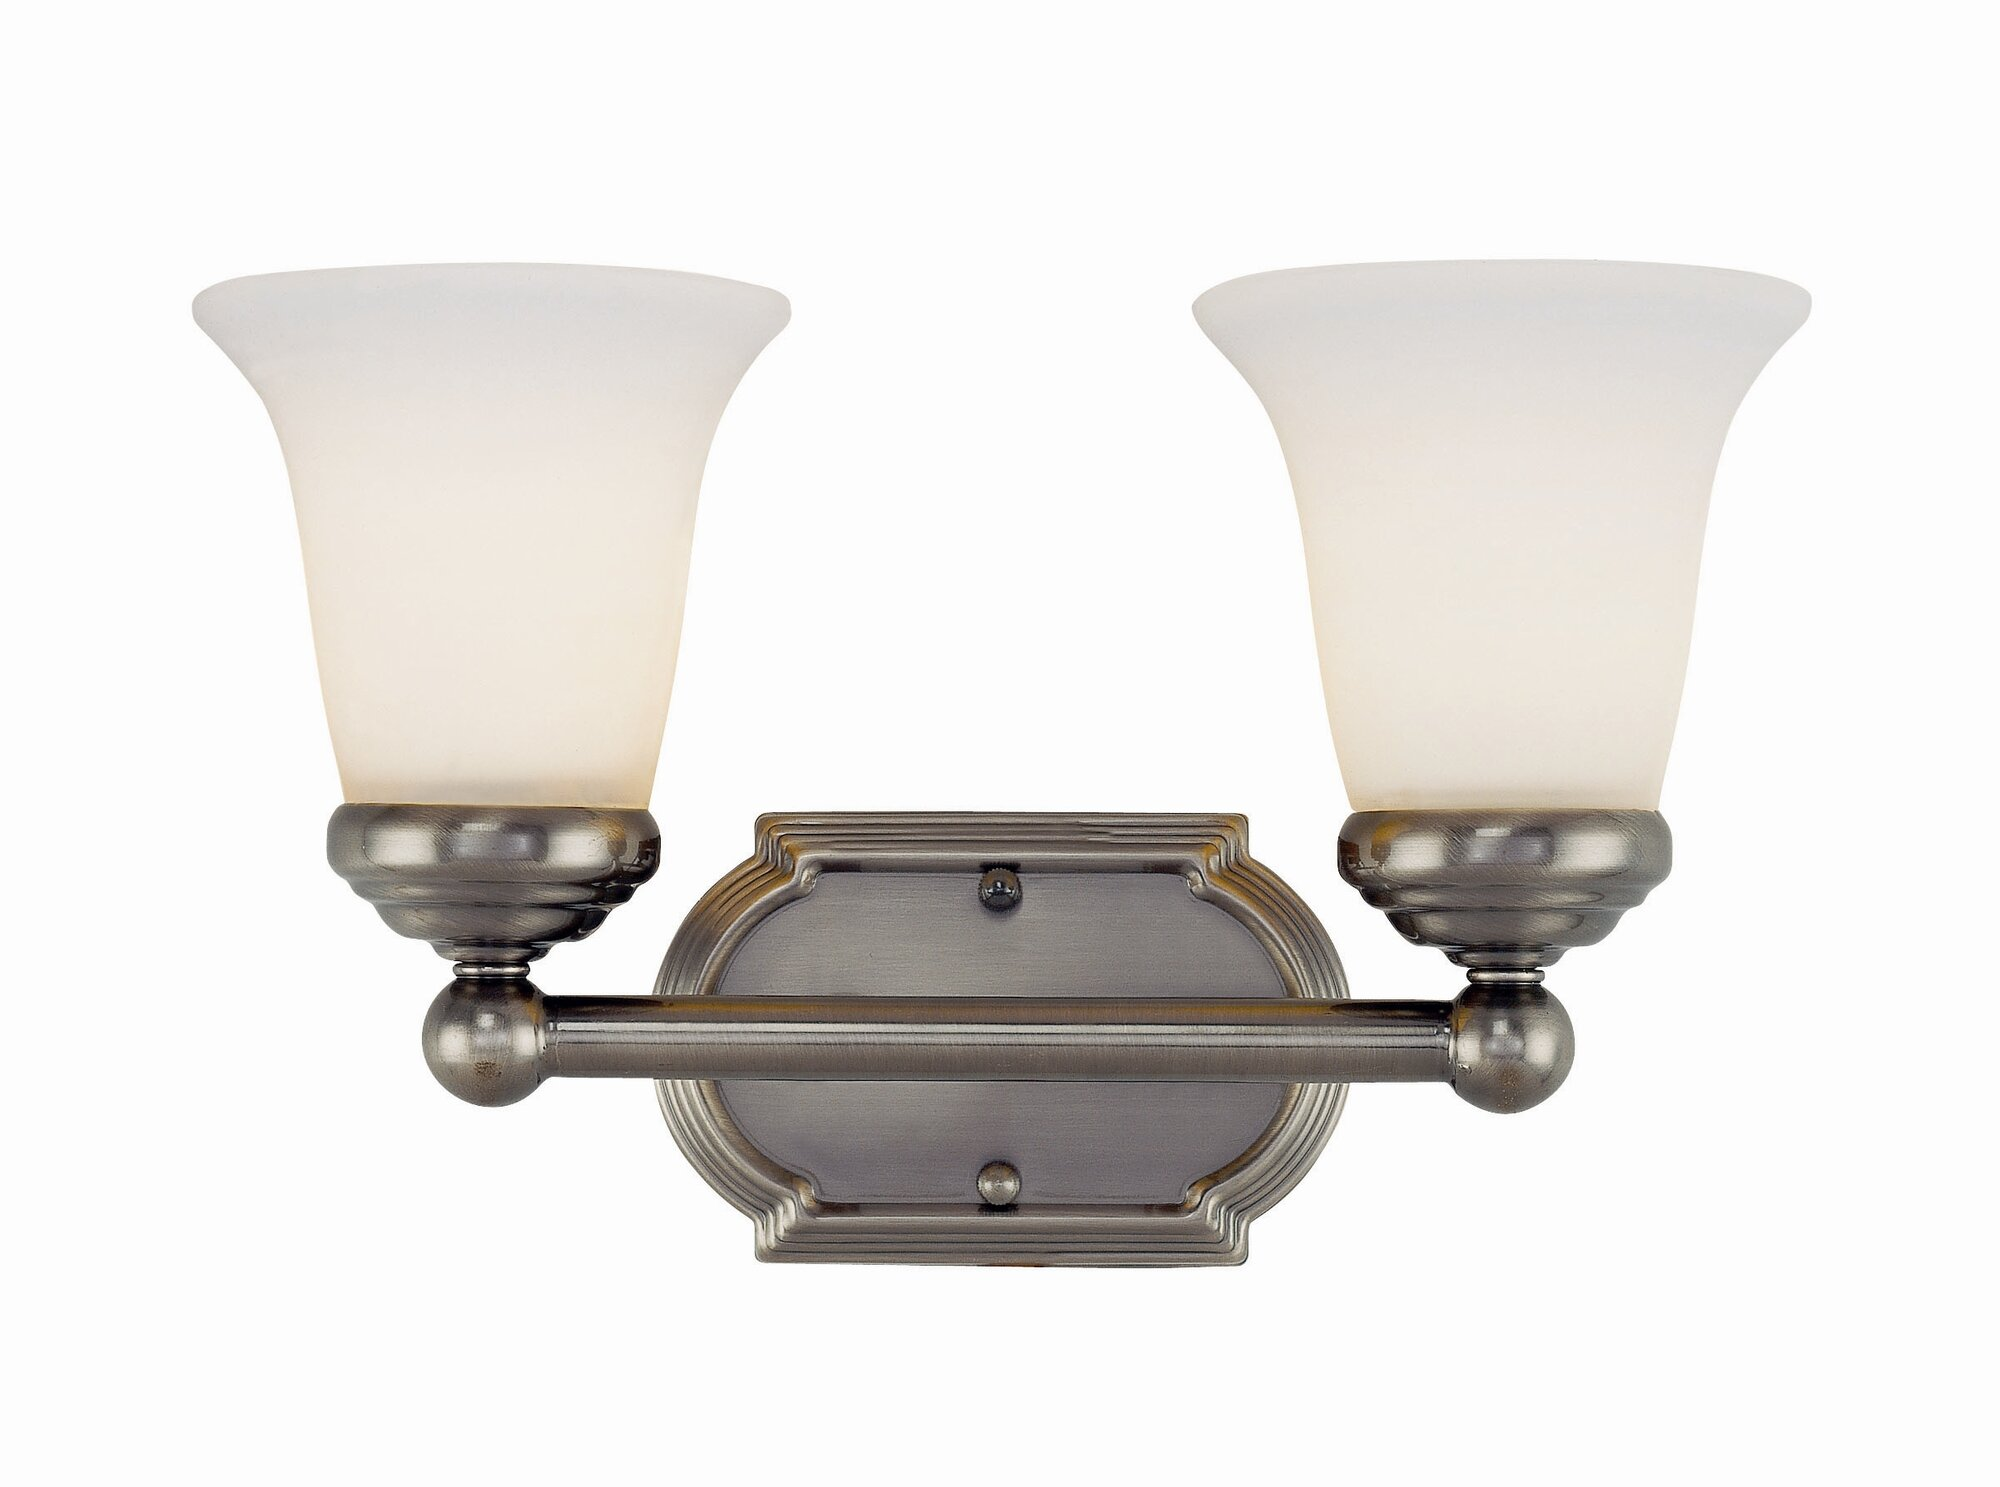 Savoy House 2 Light Bath Vanity Light eBay